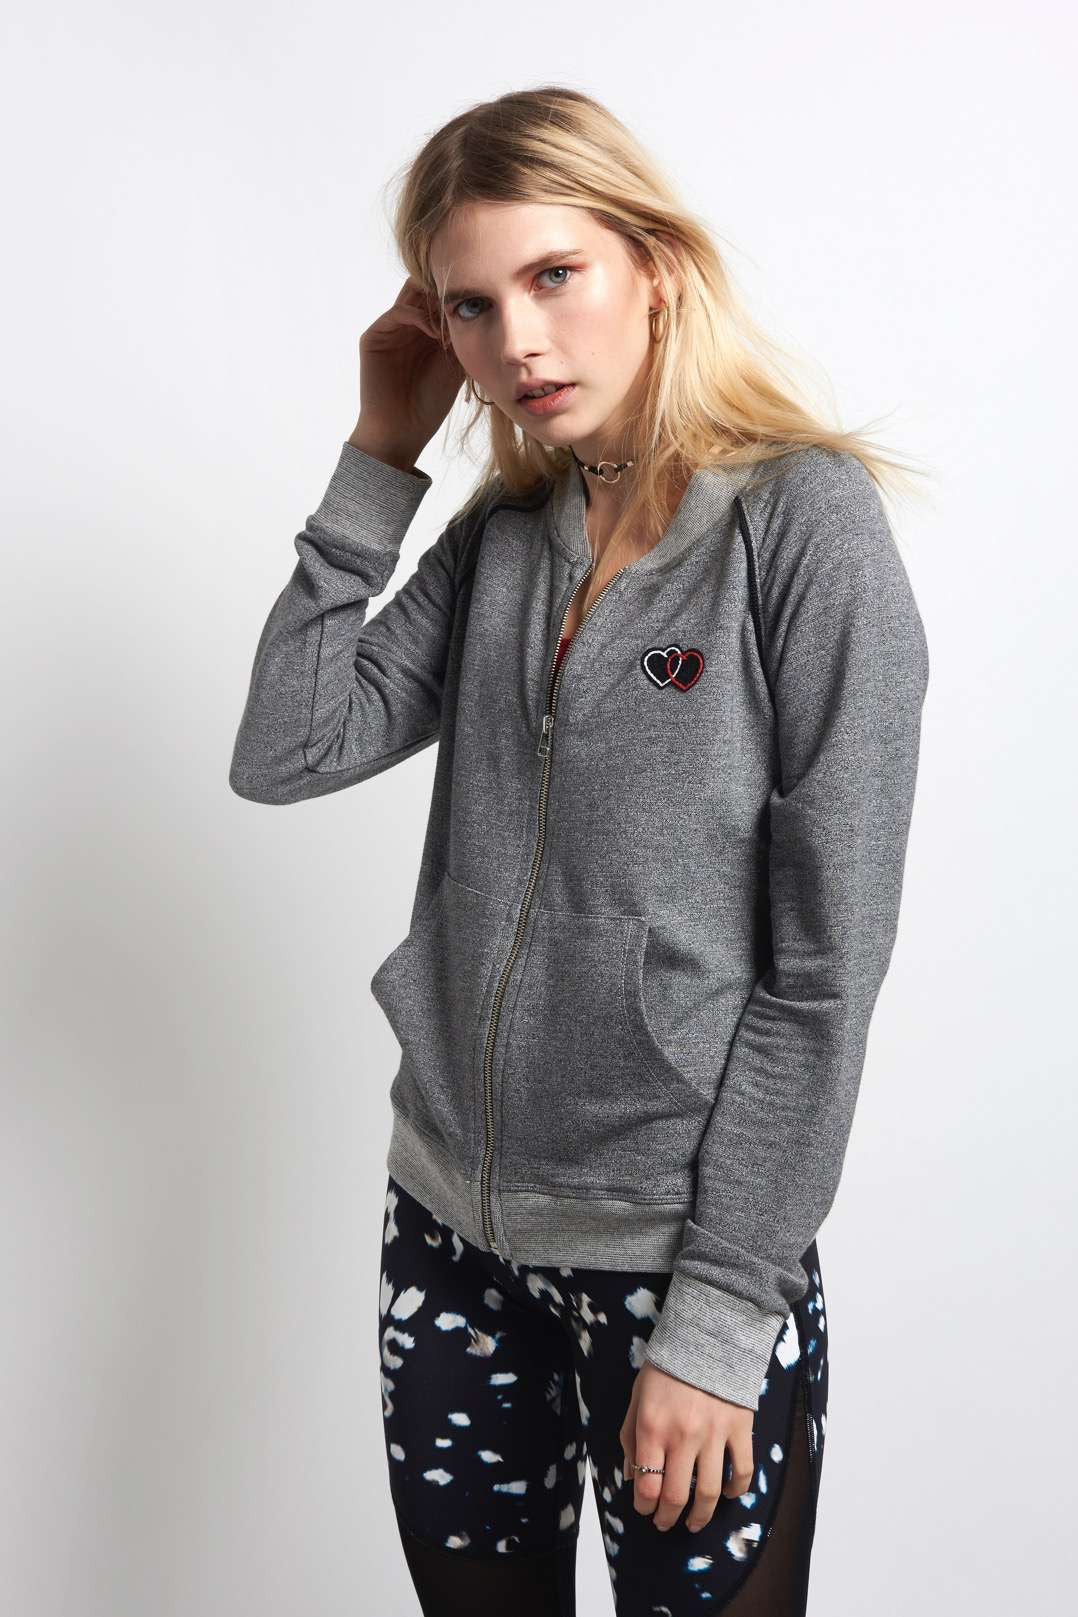 Sundry Heart Patch Track Jacket - Charcoal image 1 - The Sports Edit